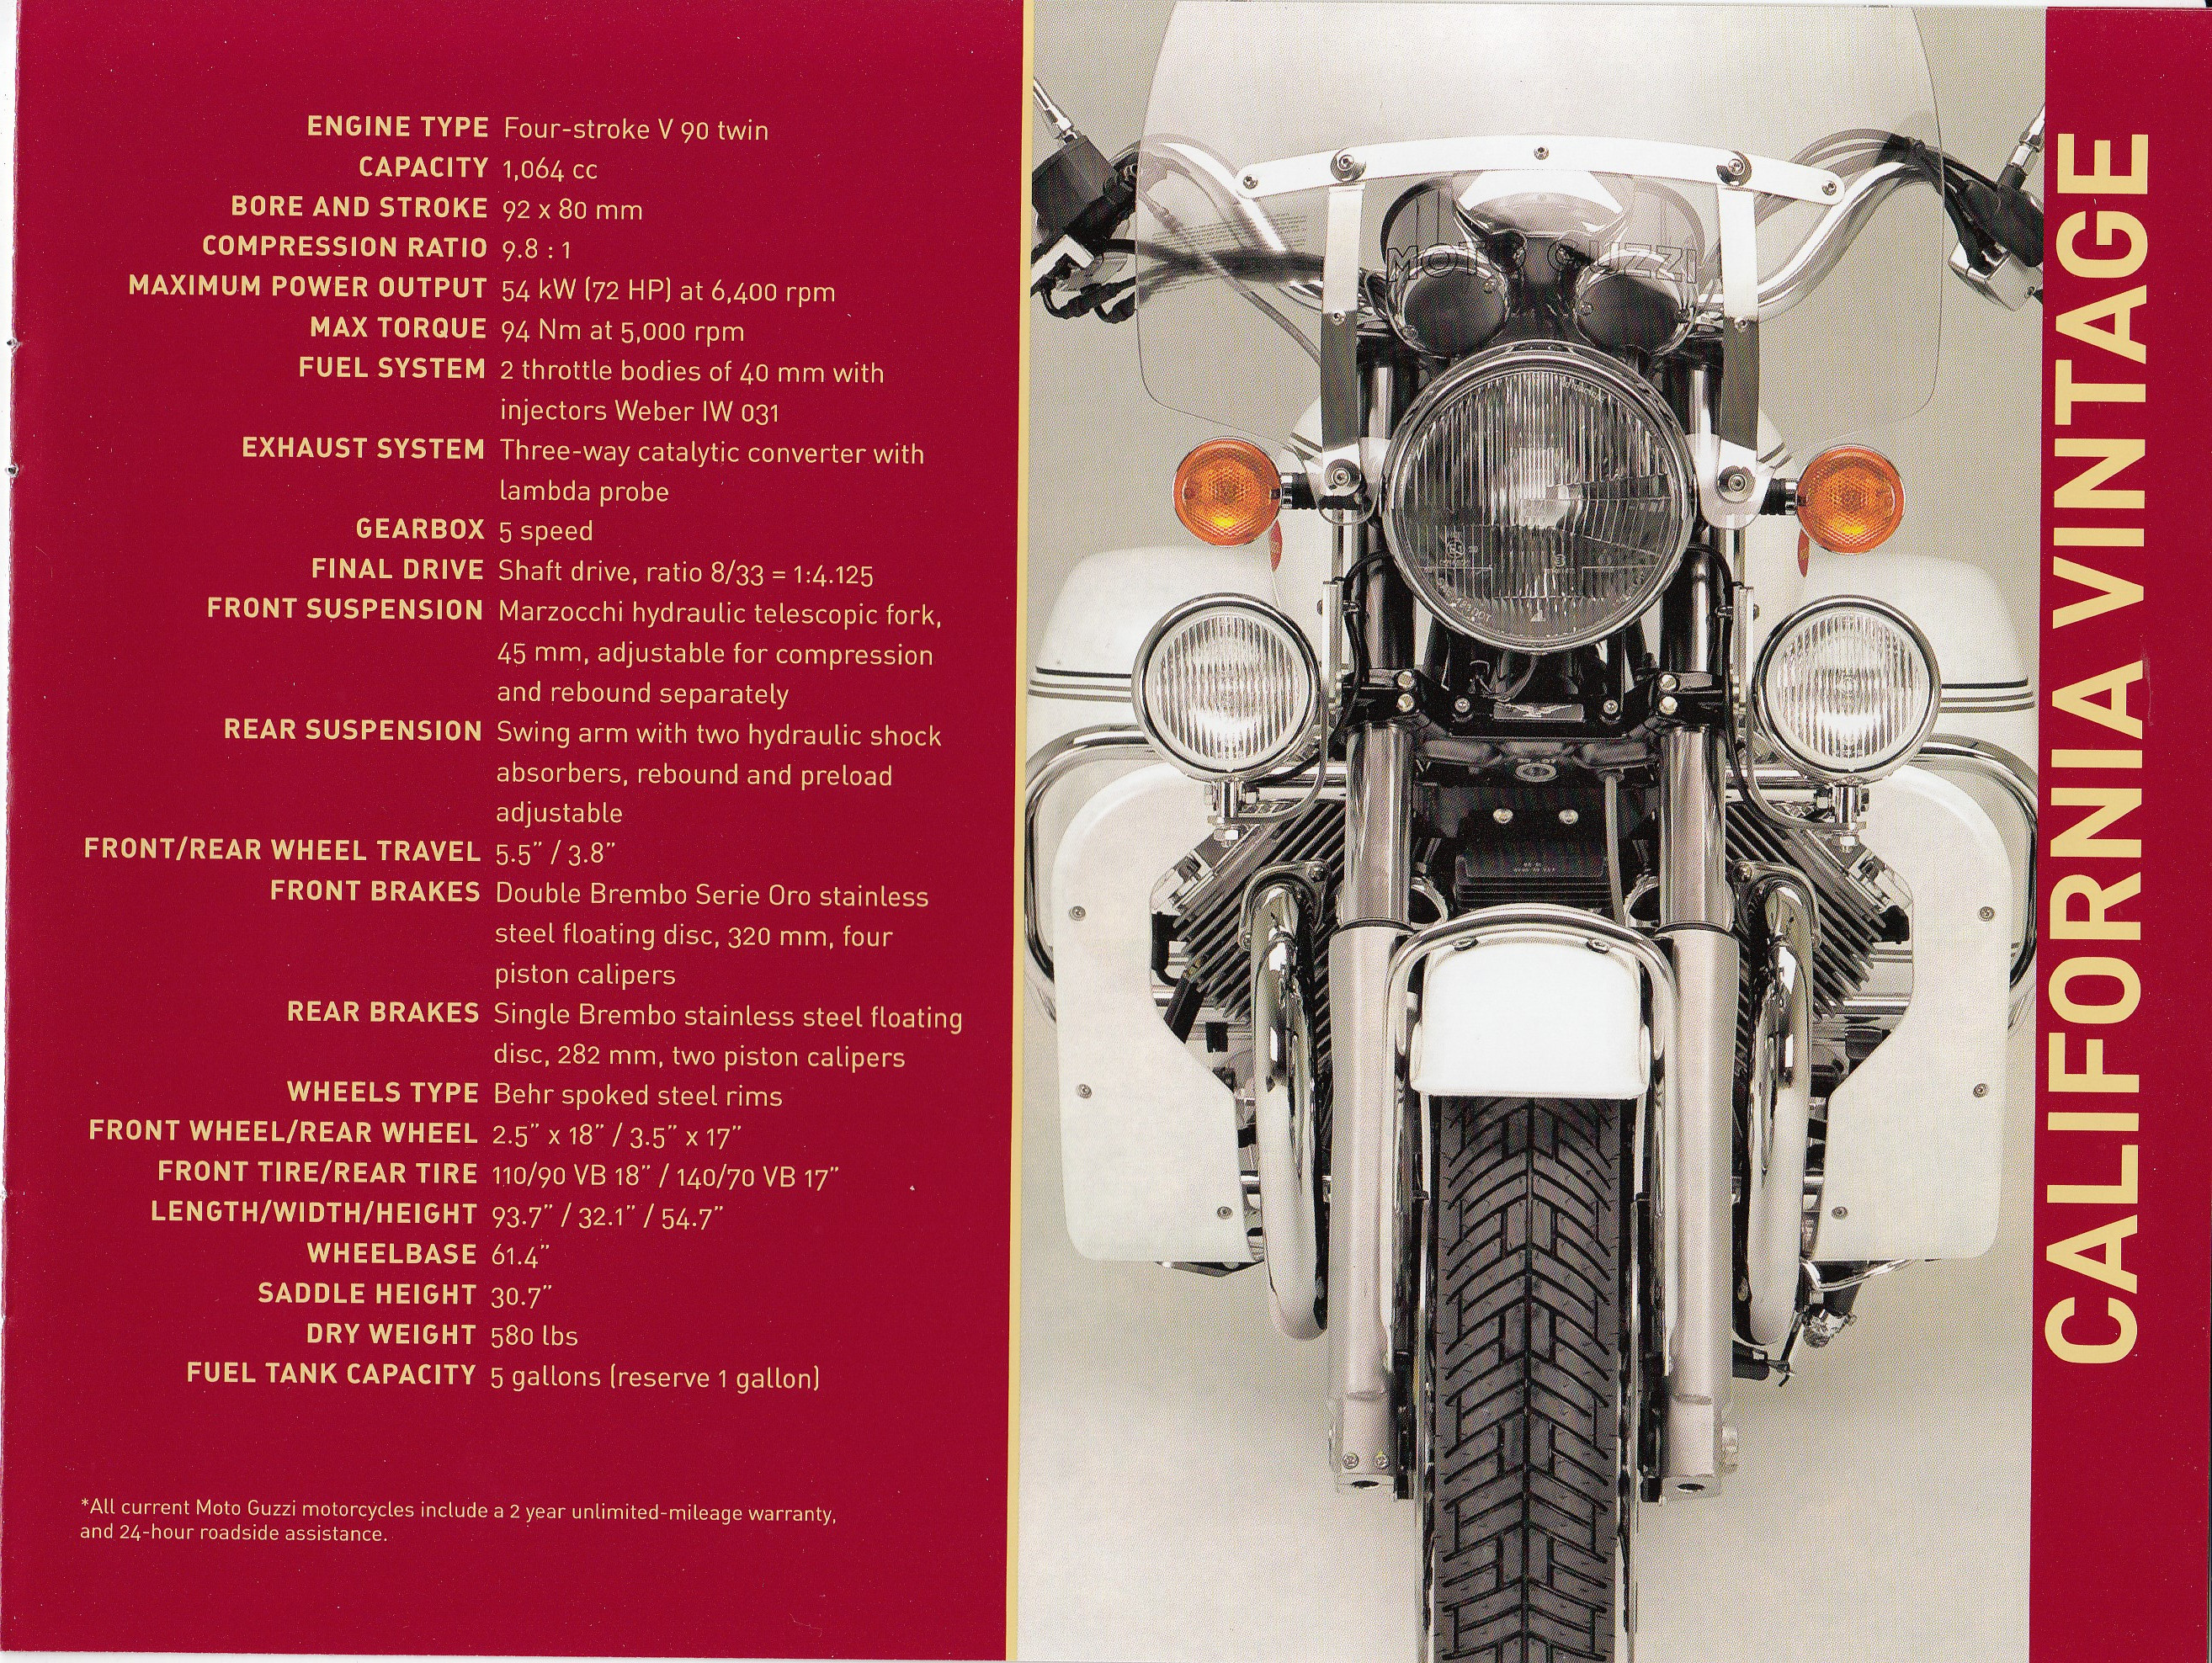 Brochure - Moto Guzzi model range 2009